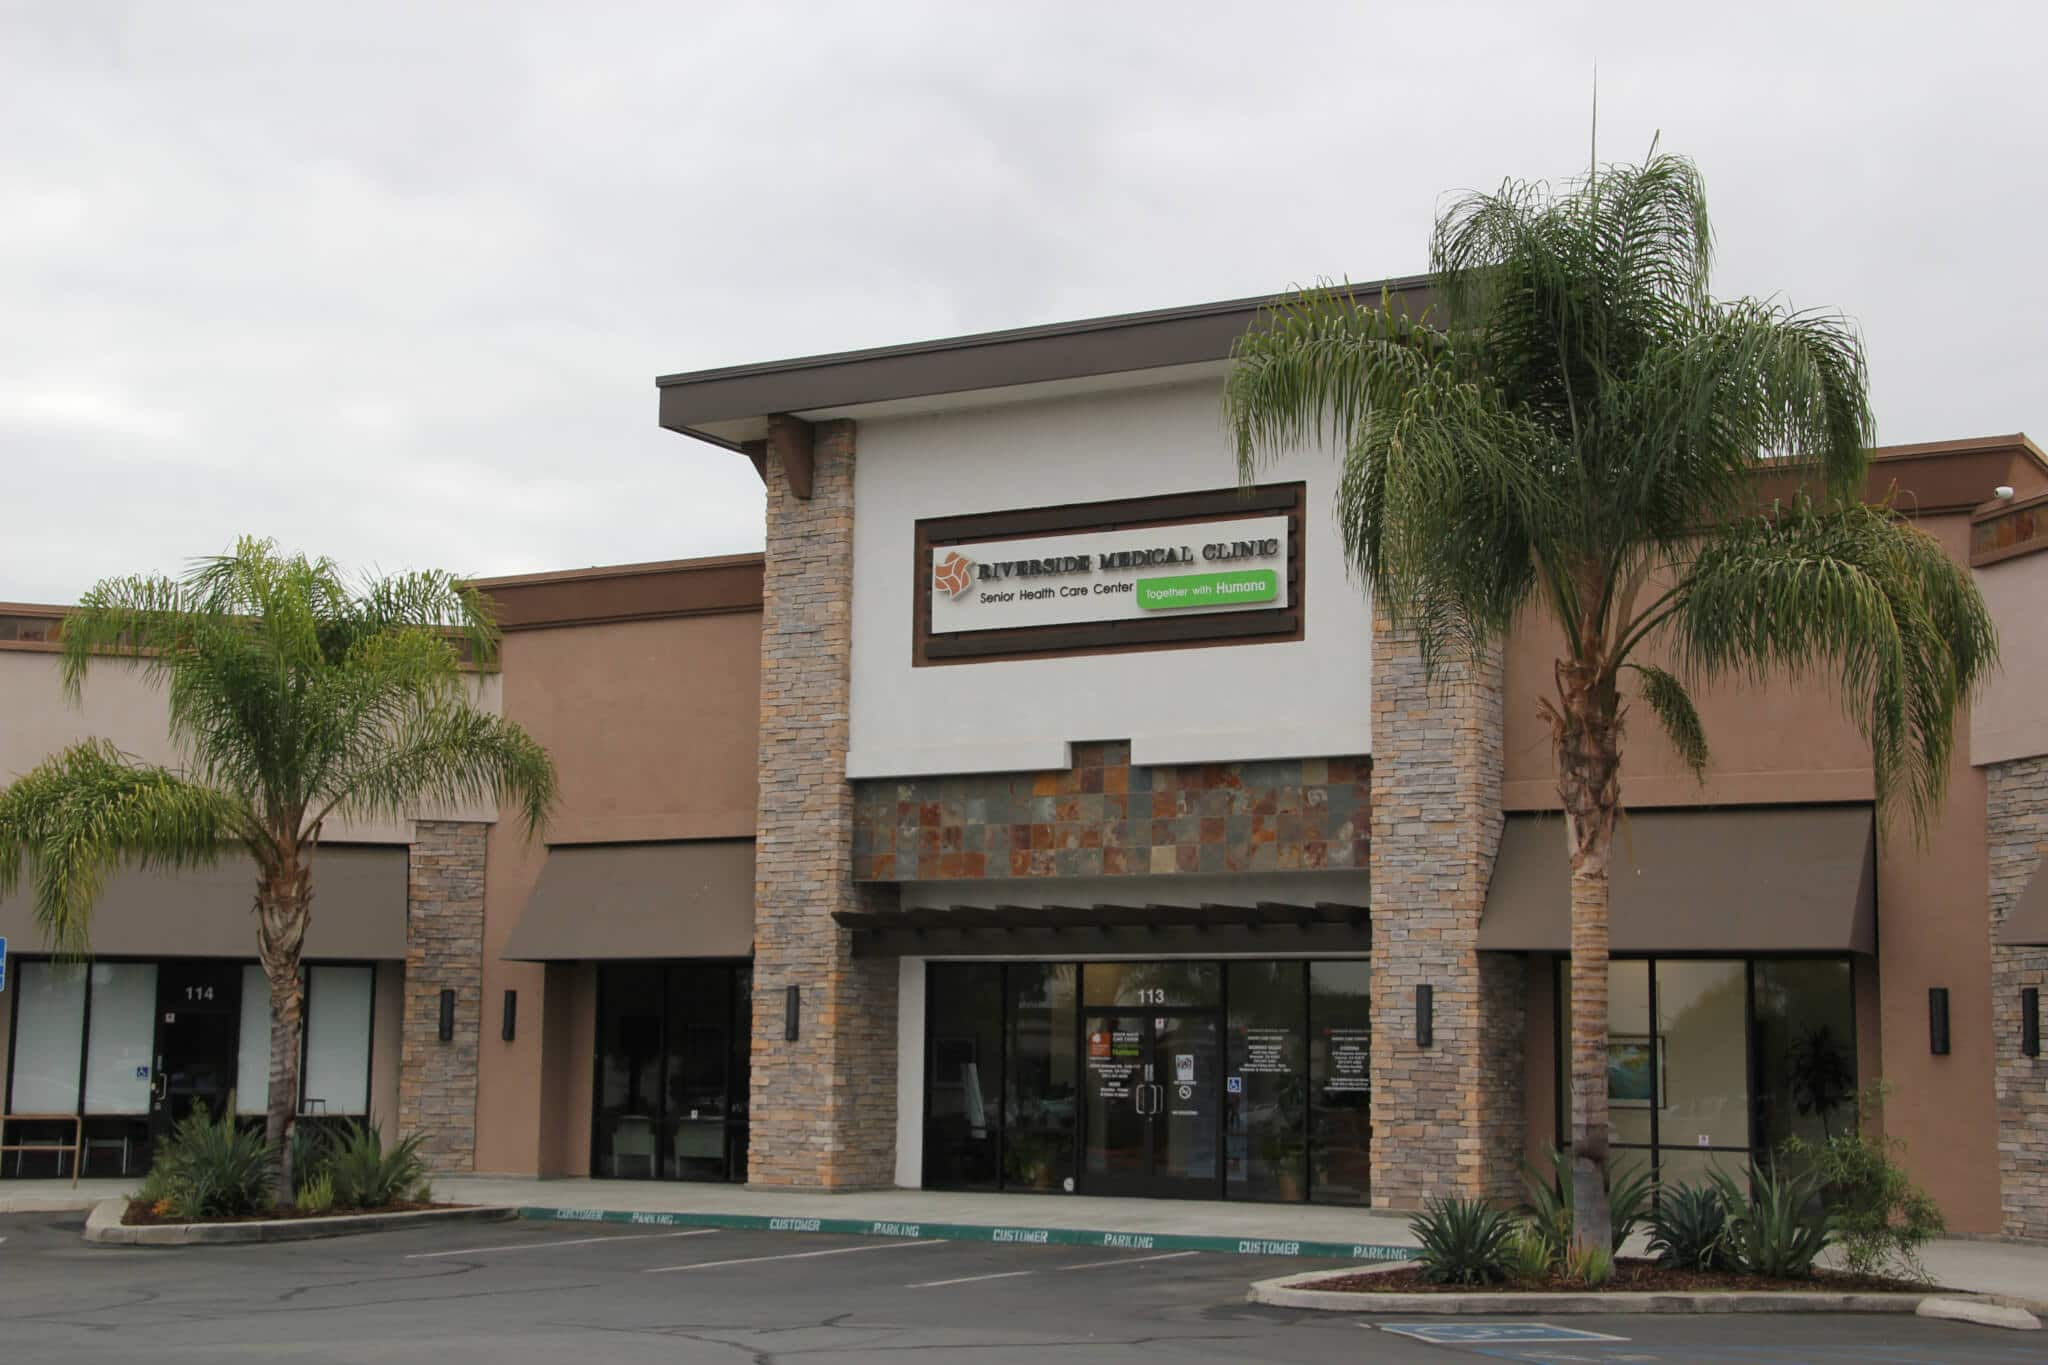 Riverside Medical Clinic in Murrieta, California